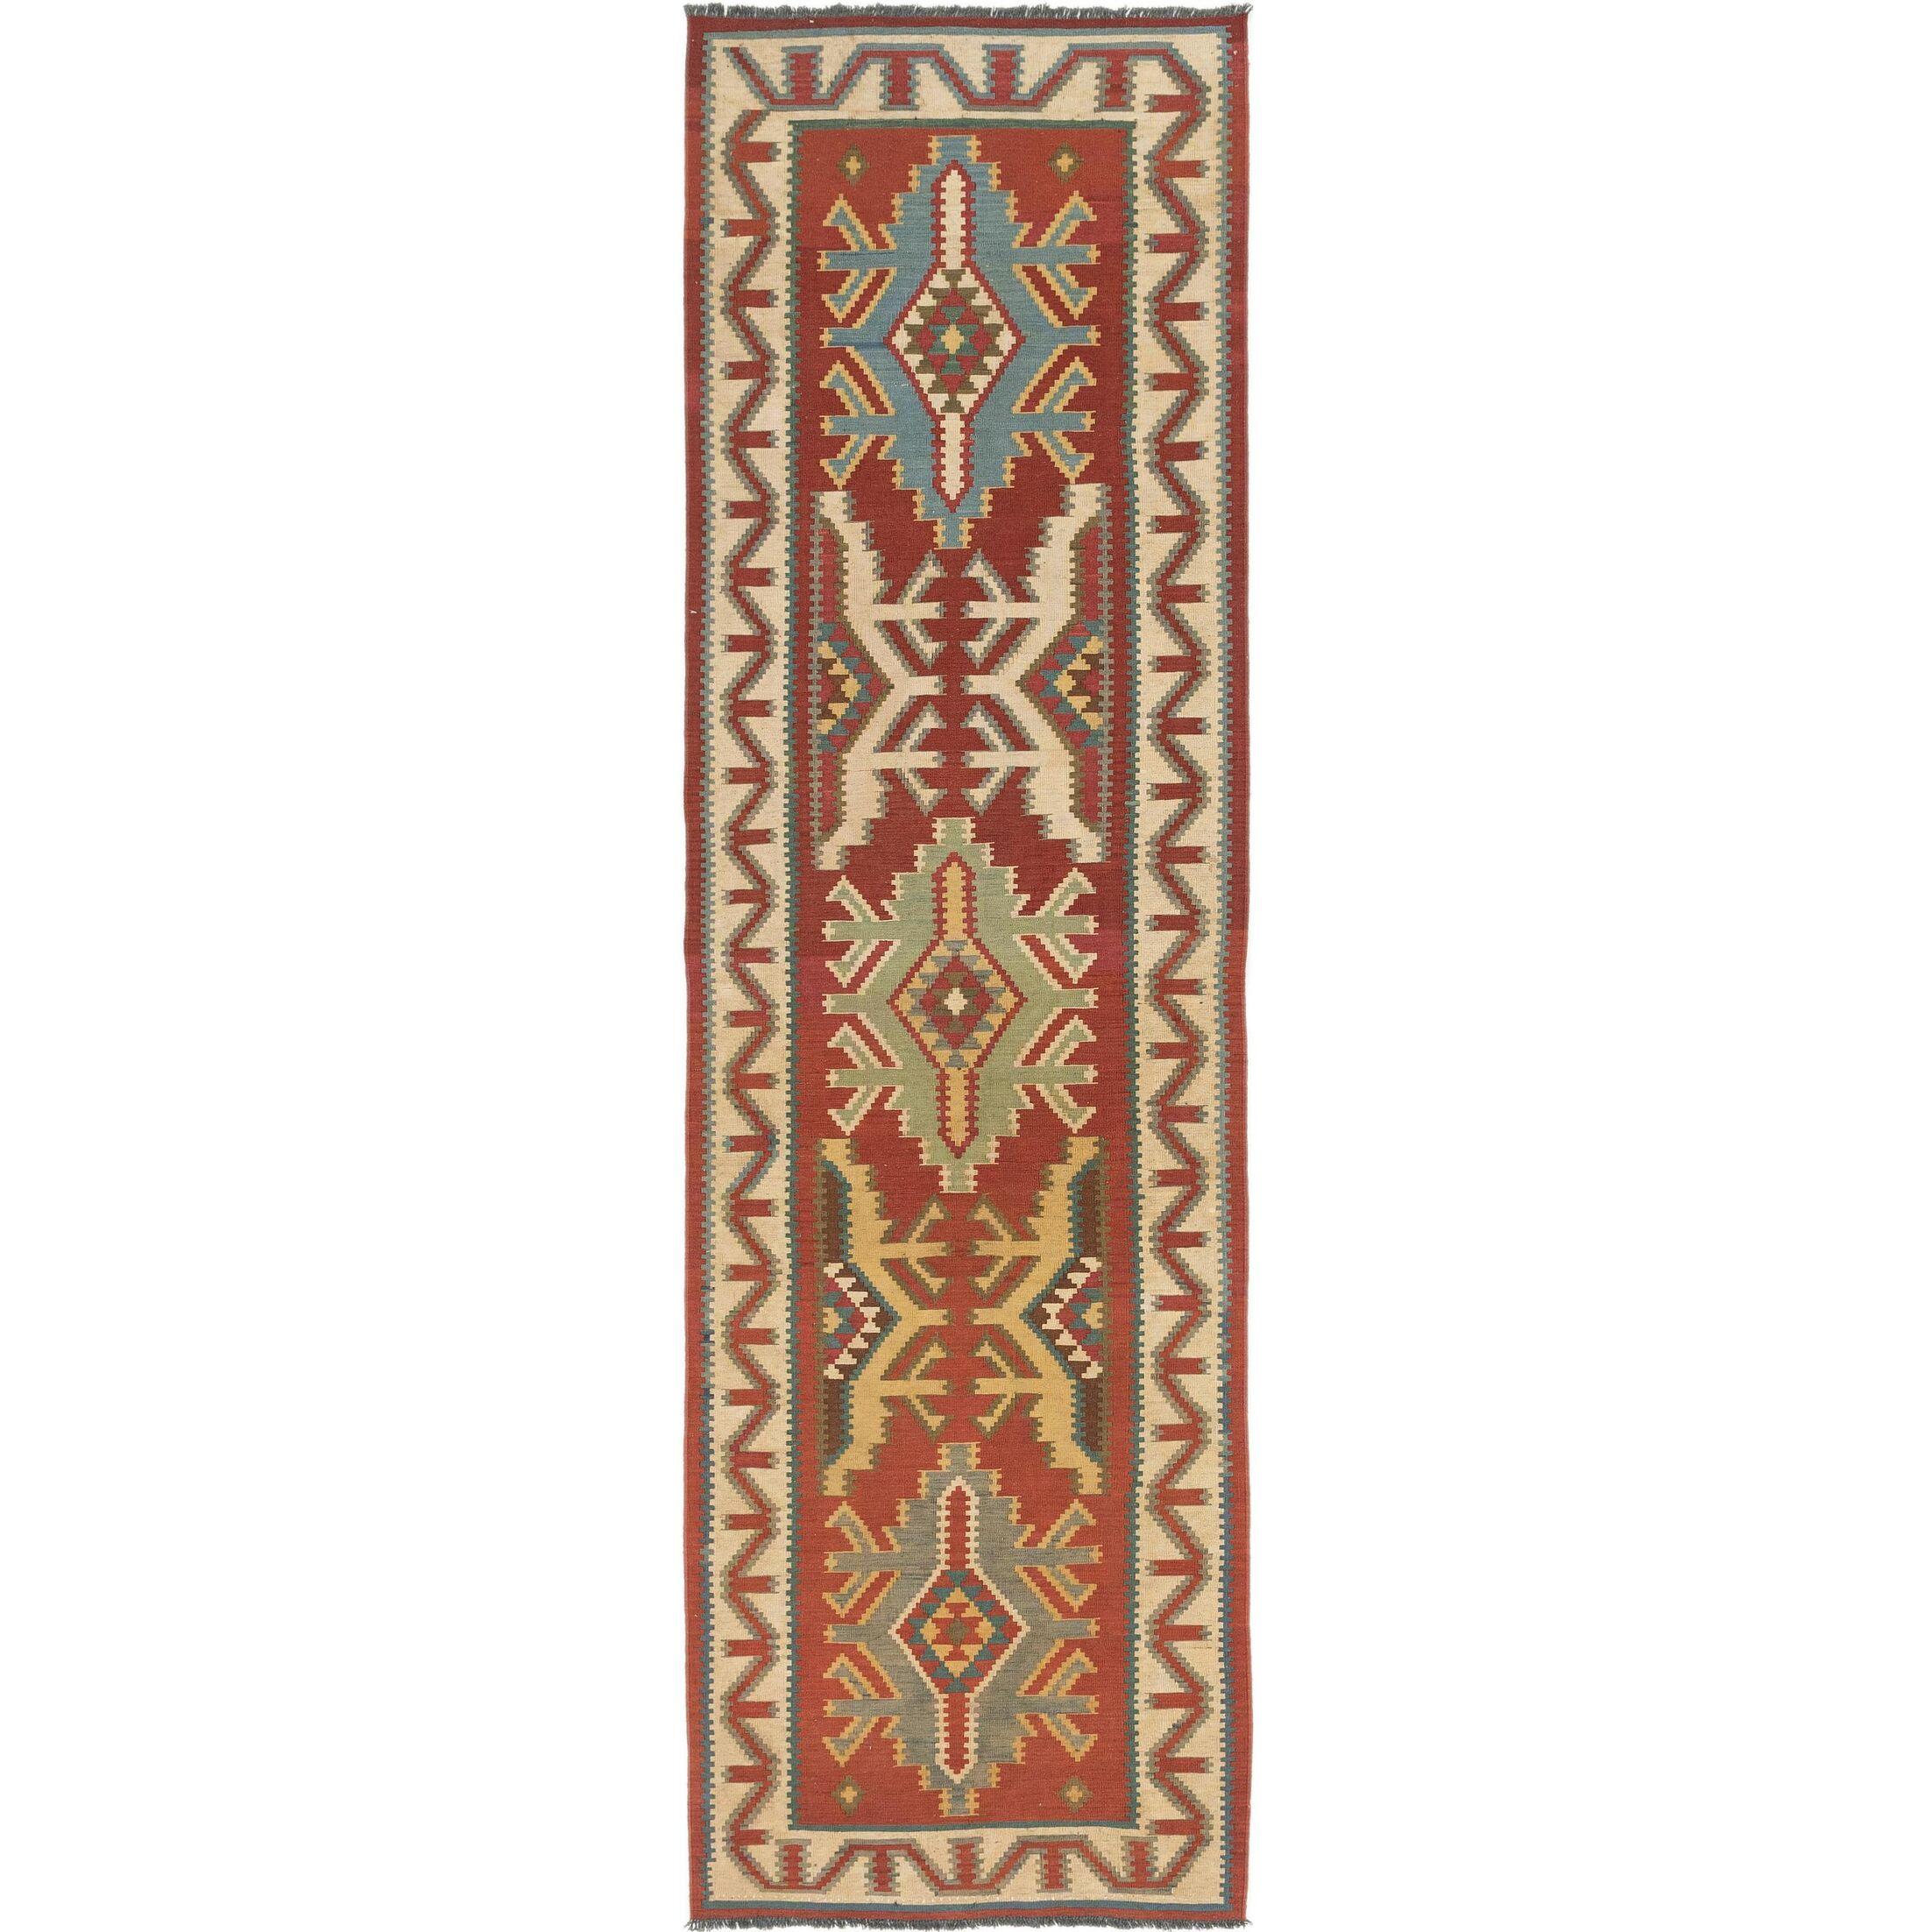 One-of-a-Kind Lorain Hand-Knotted Runner 3'3